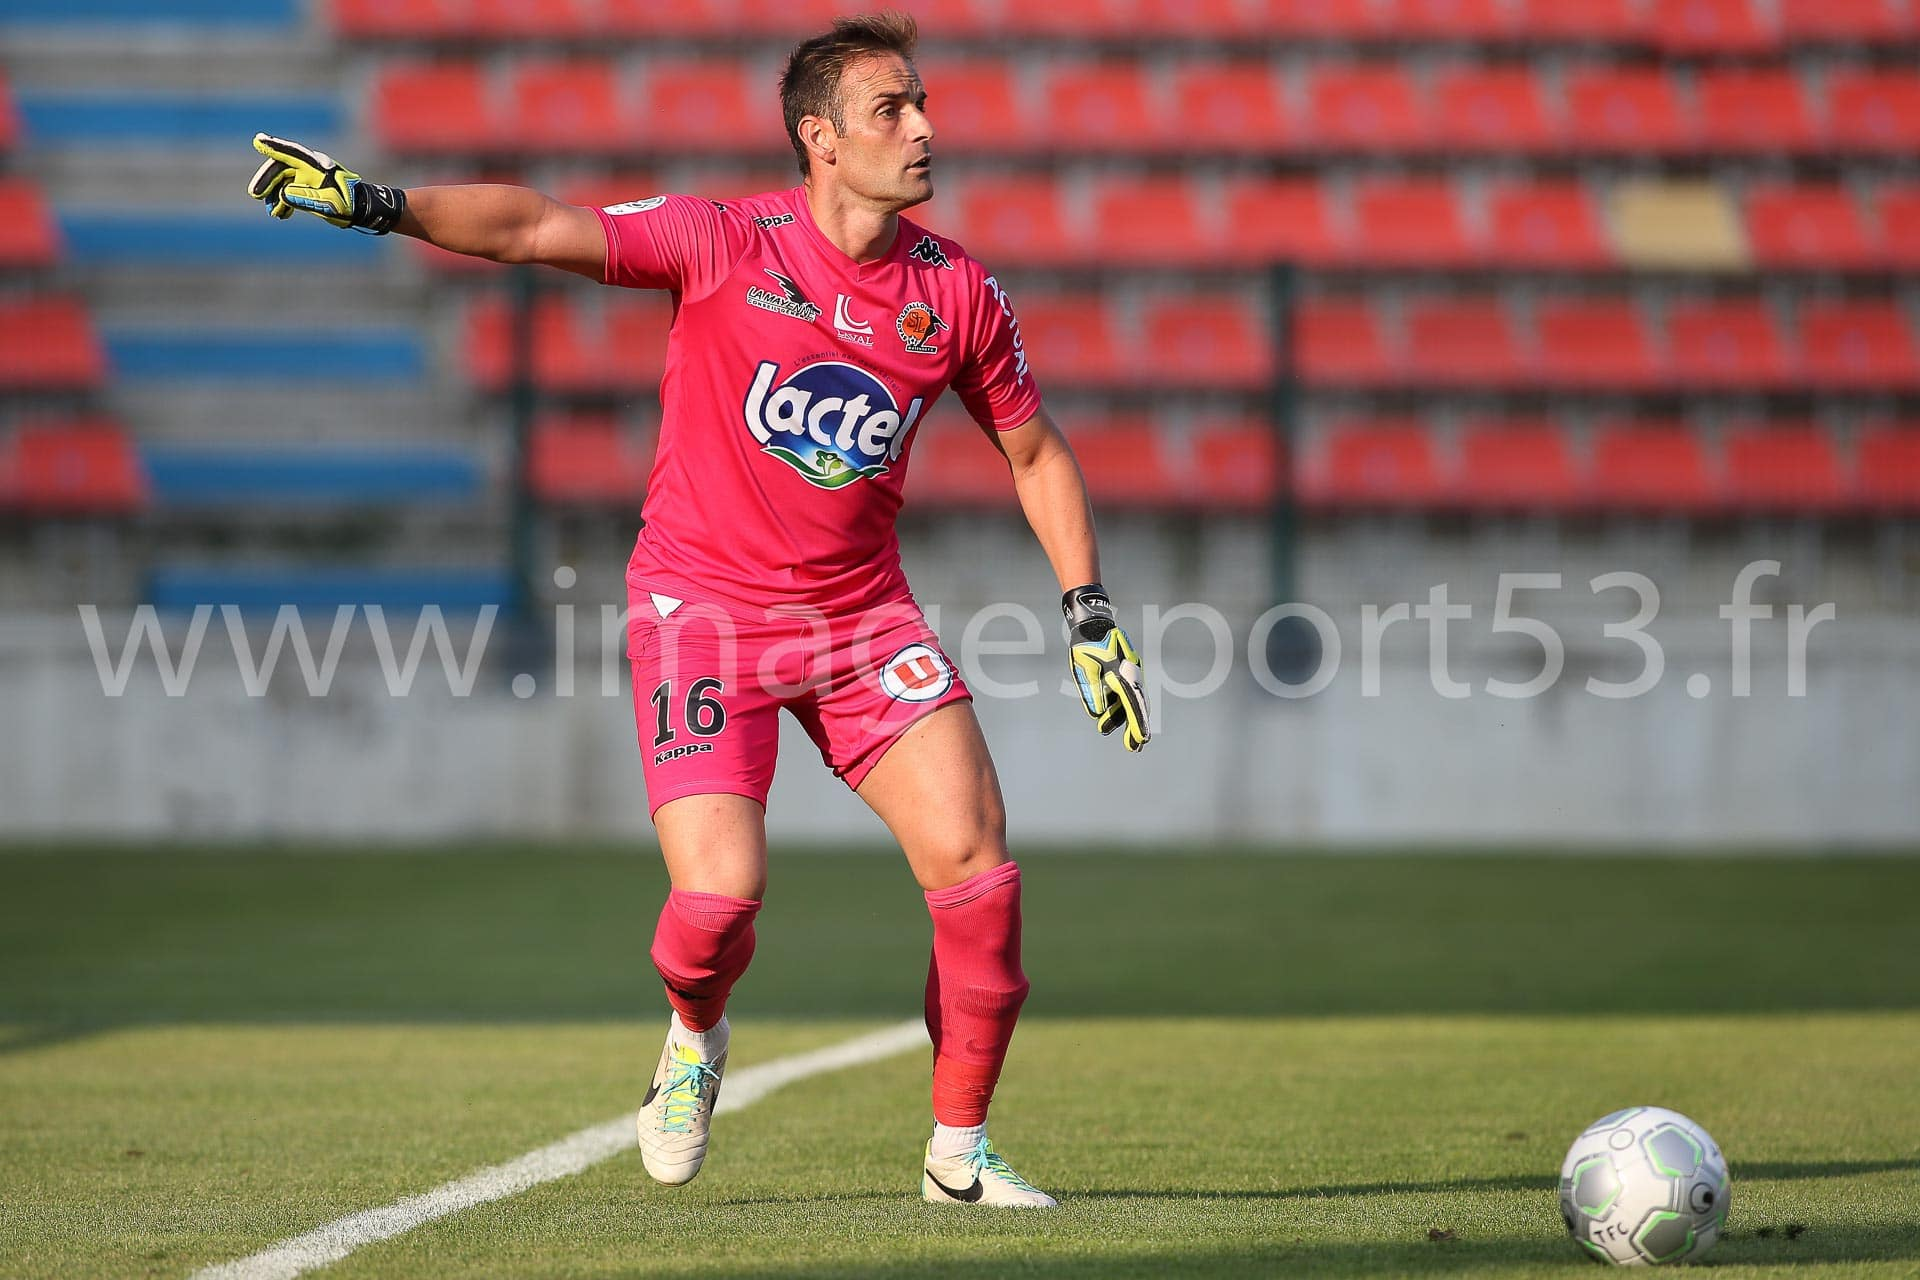 NG-Ligue2-1415-Amical6_Tours-Laval_11